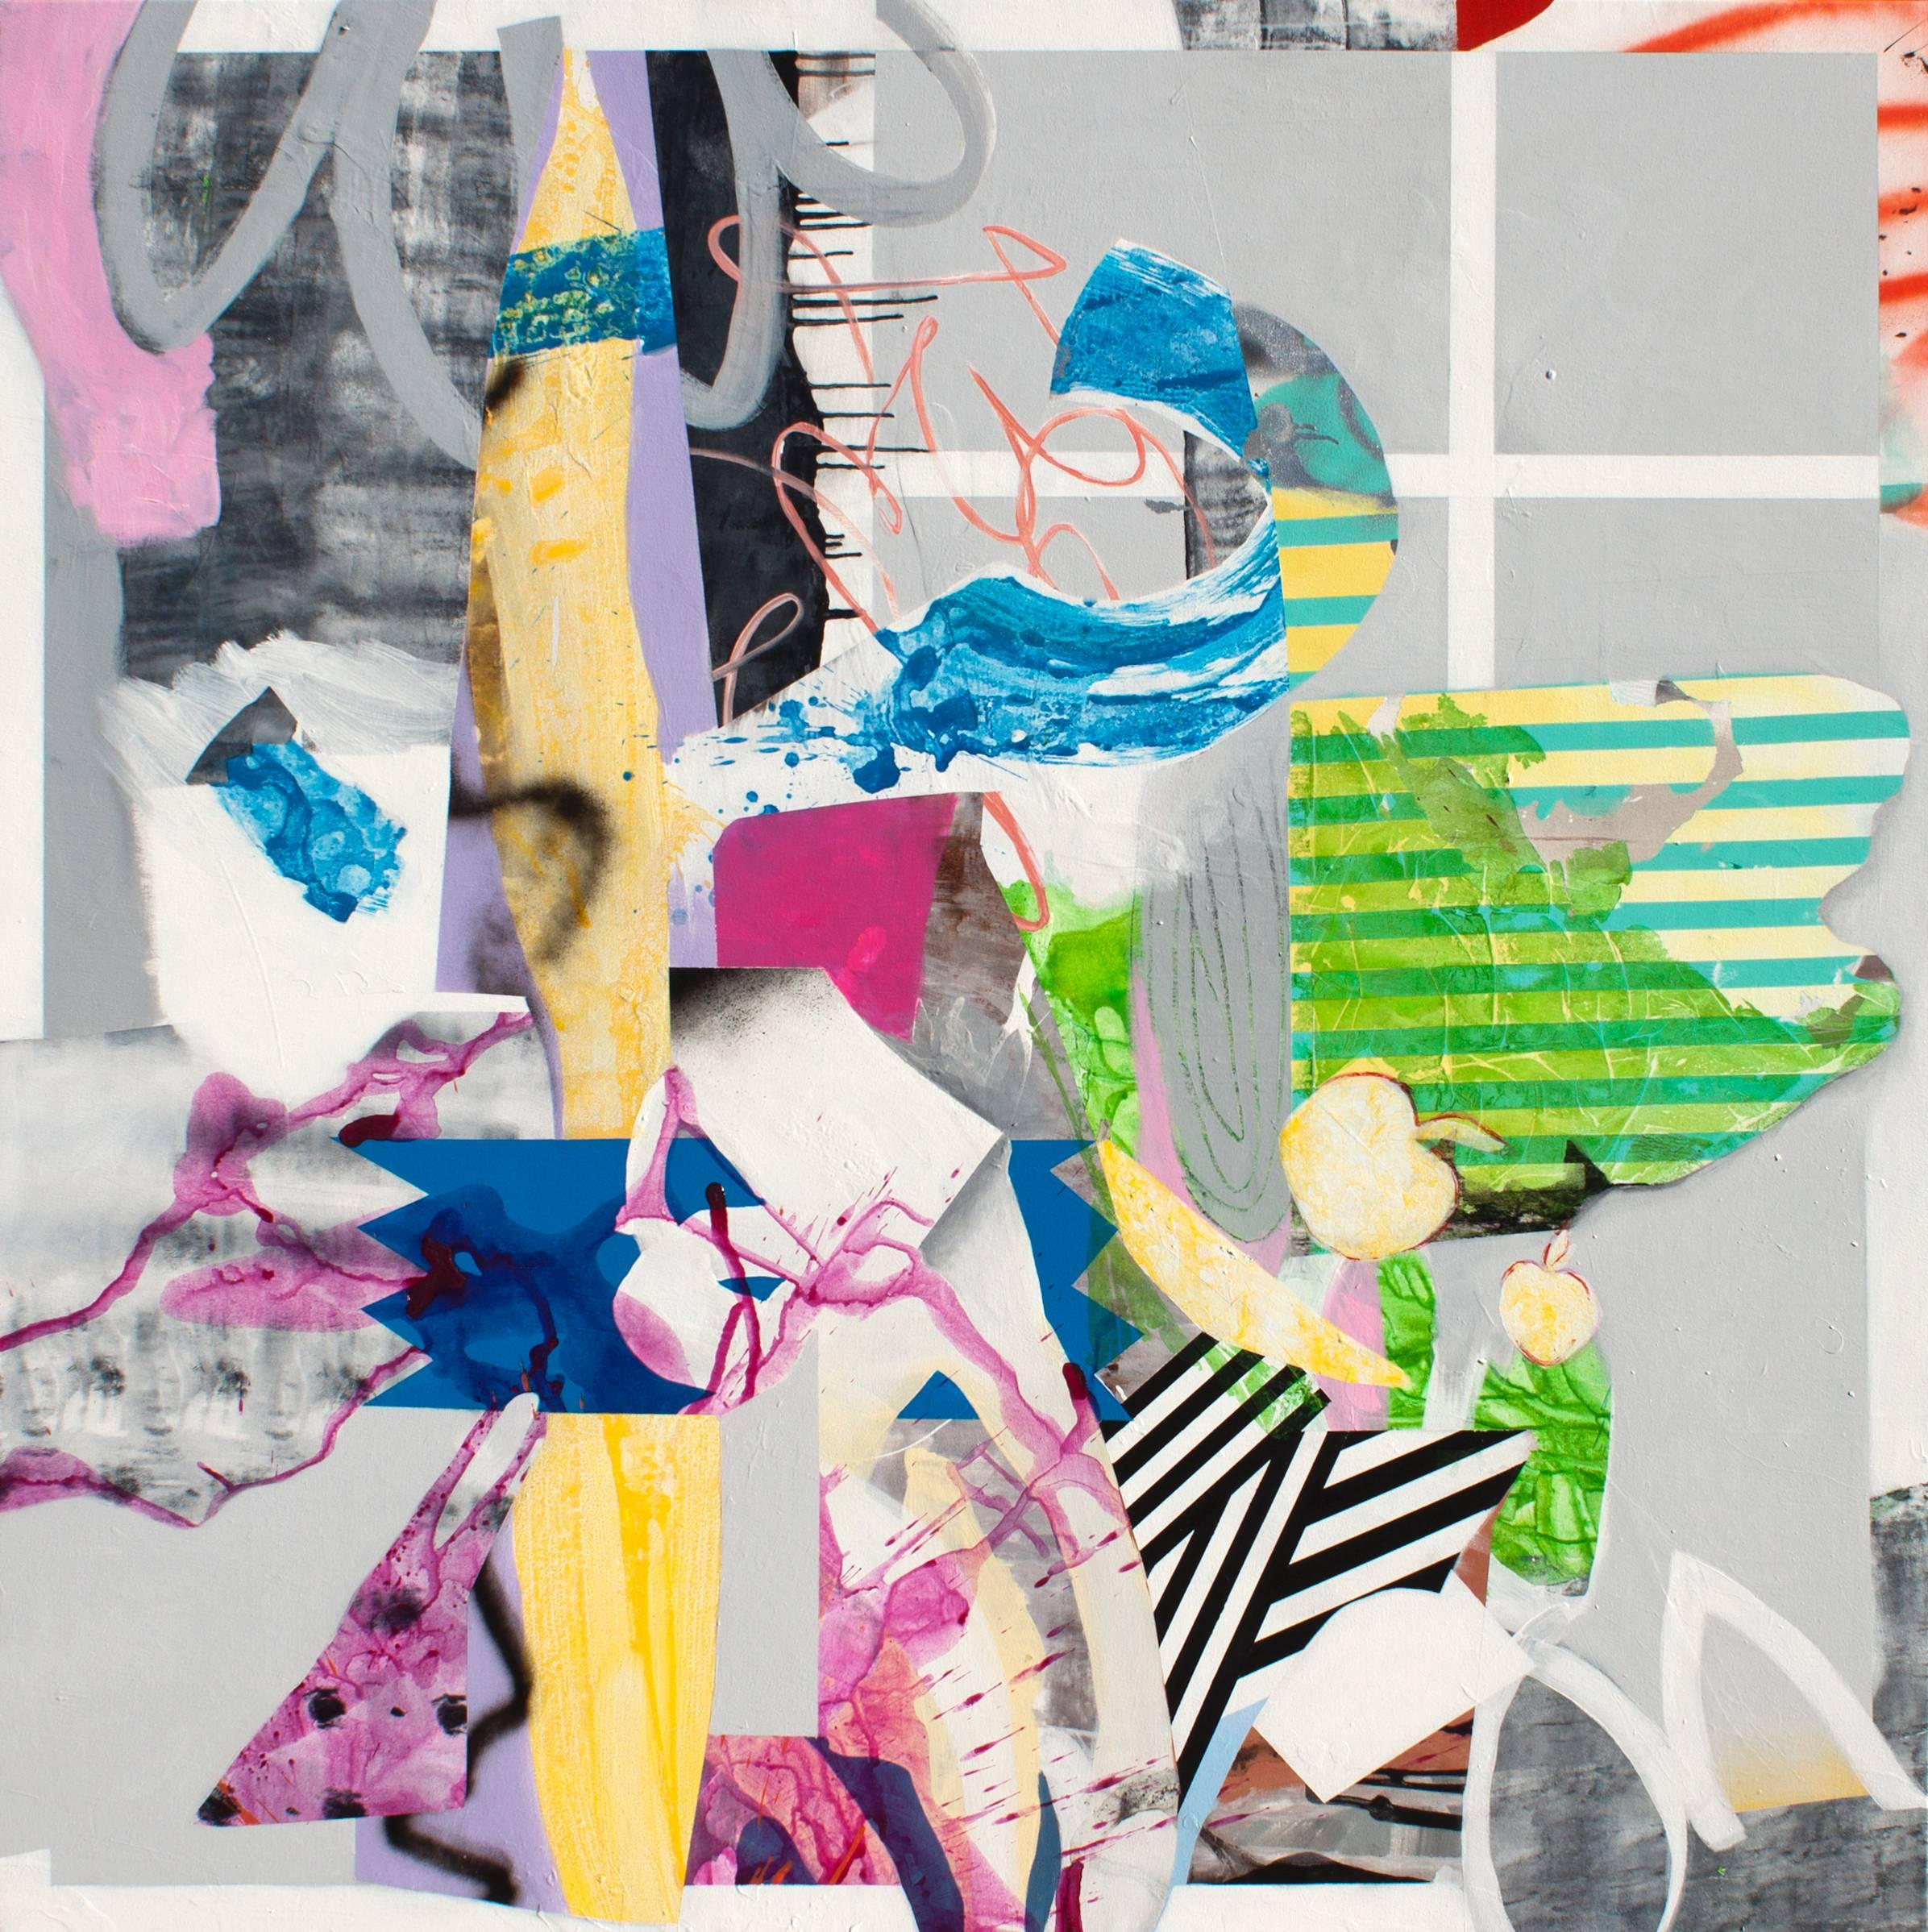 Paper House - A lively and colorful collage composition